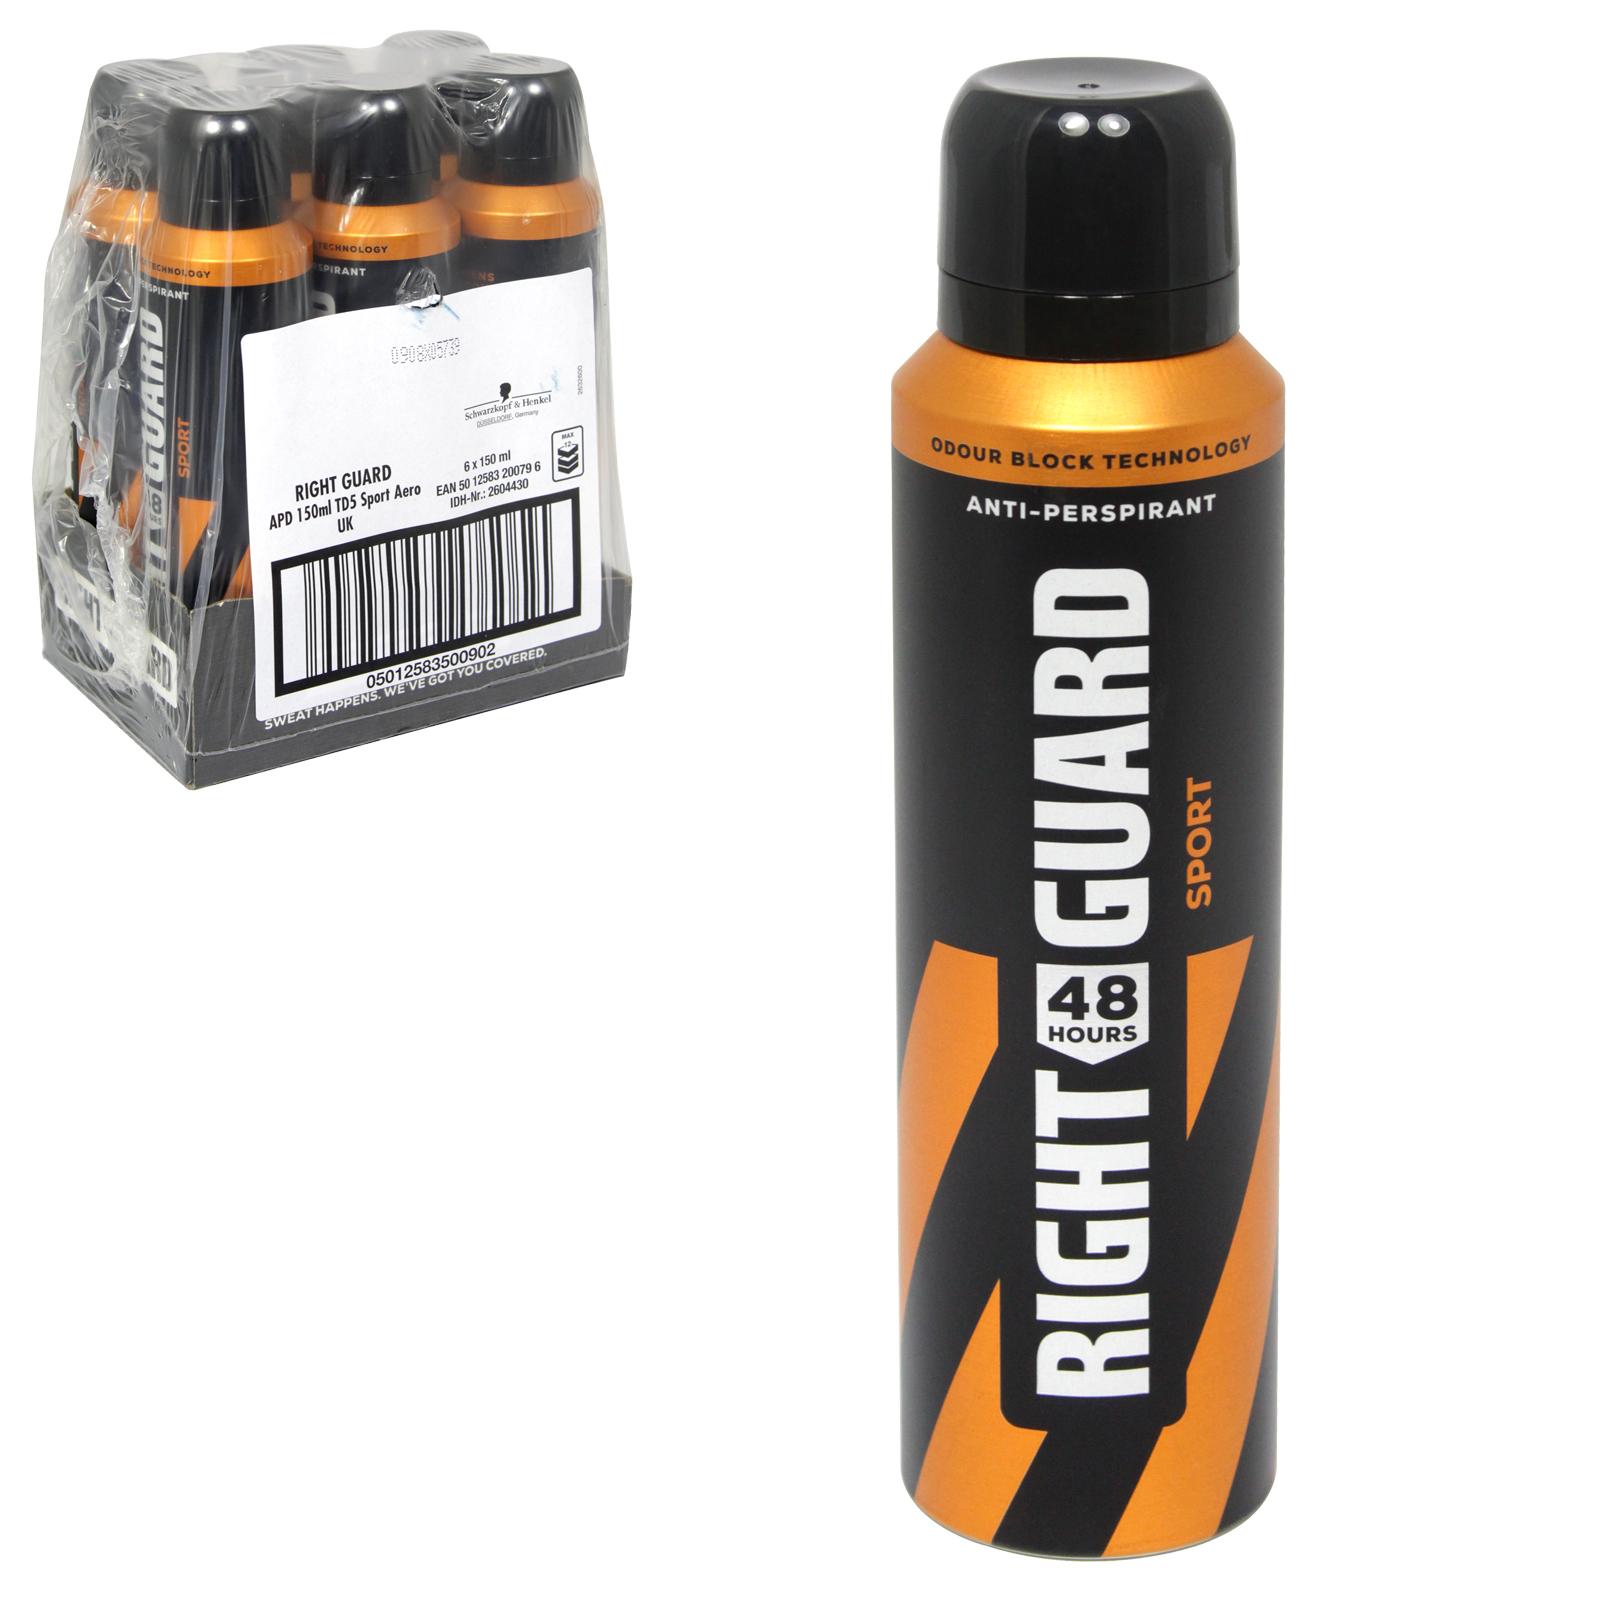 RIGHT GUARD TOTAL DEFENCE 48HR APA 150ML MEN SPORT X6